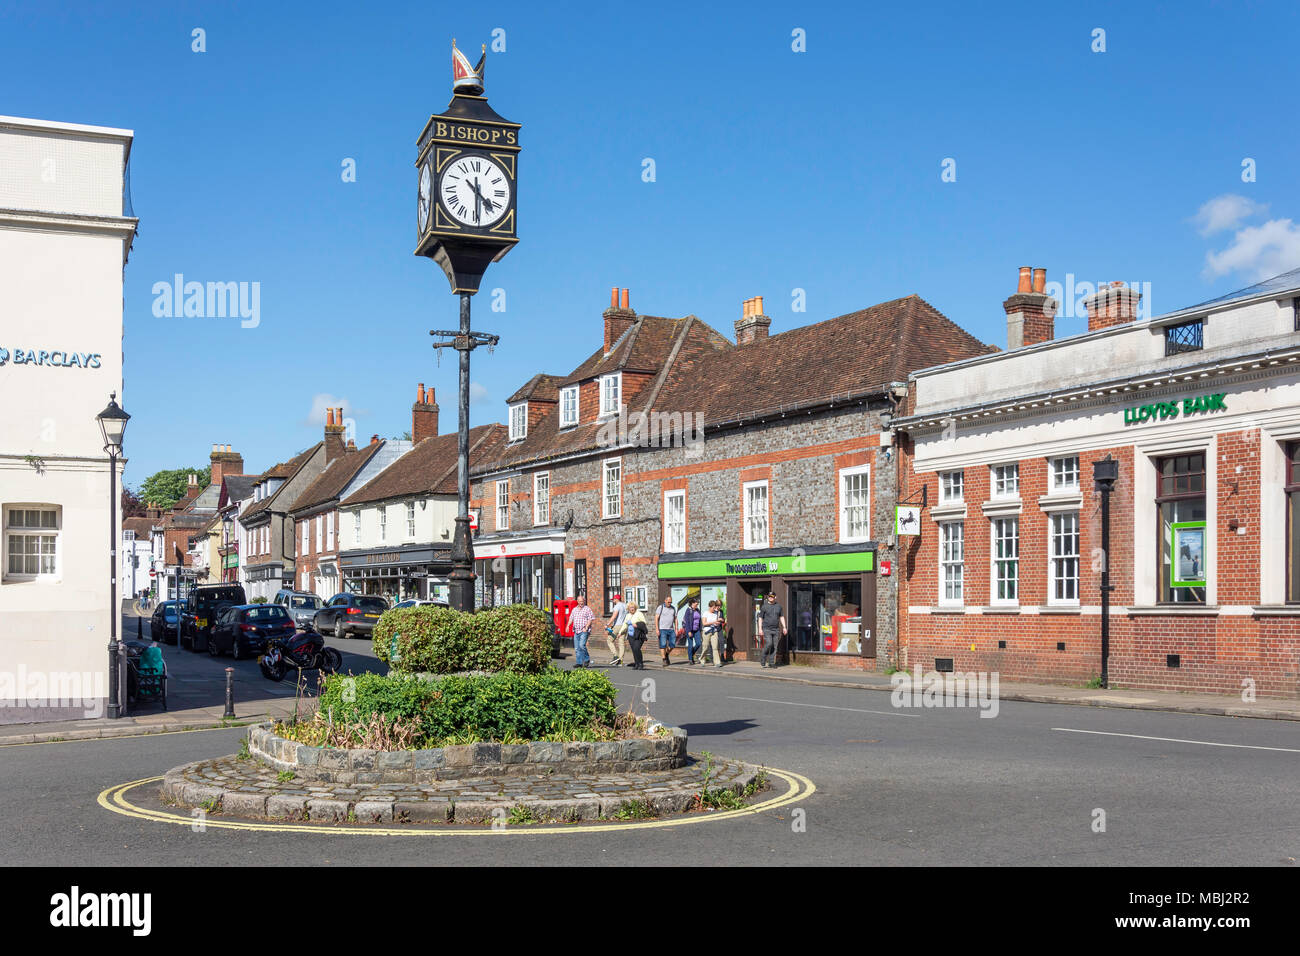 St George's Square, Bishop's Waltham, Hampshire, England, United Kingdom - Stock Image